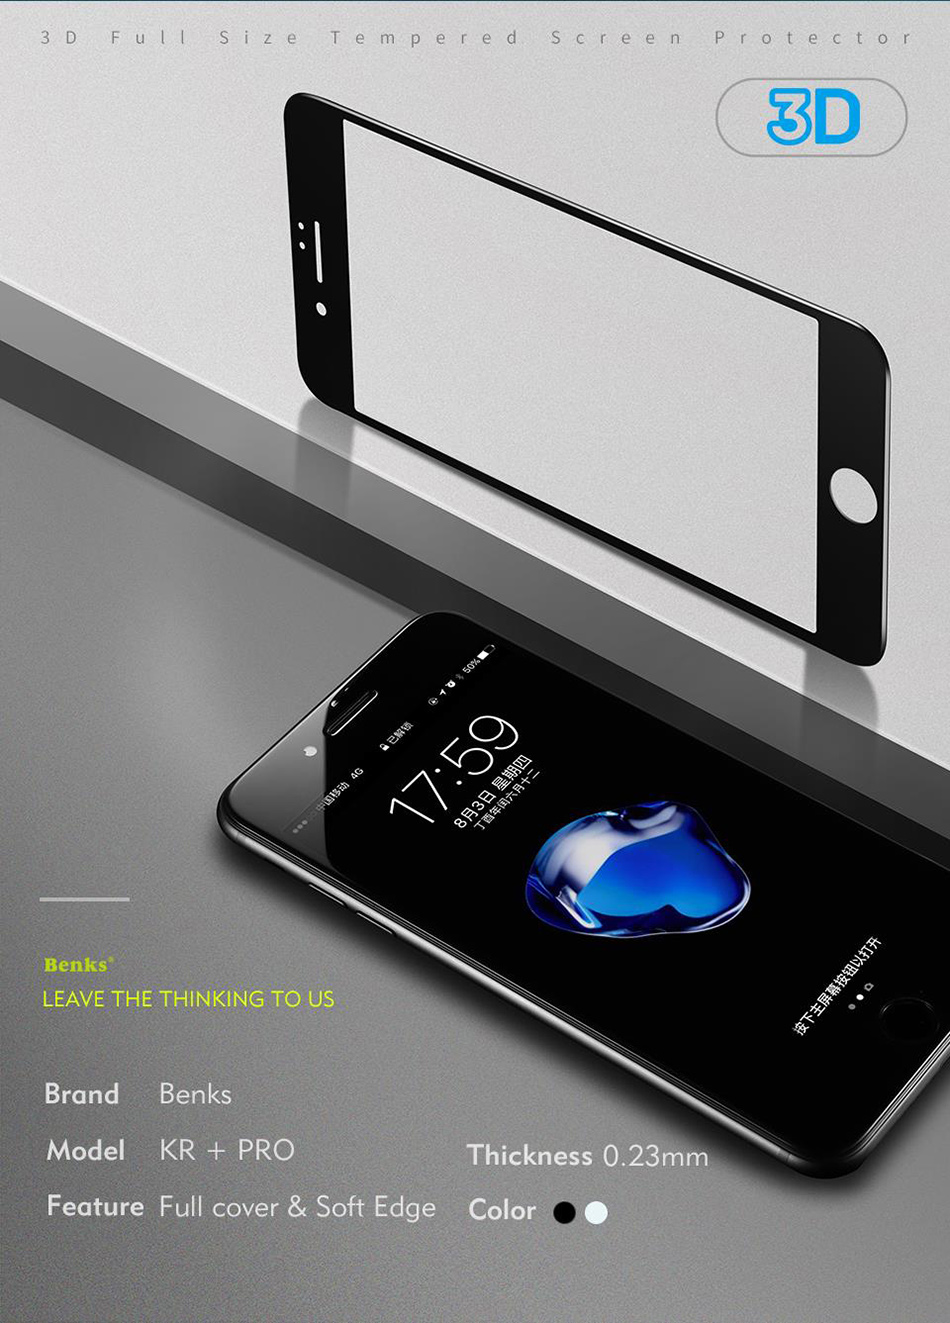 Benks 3D Tempered Glass Film For iPhone 8 7 6s Full Curved Screen Protector 0.23mm Cover Protection Front Film For iphone 6 Plus (7)